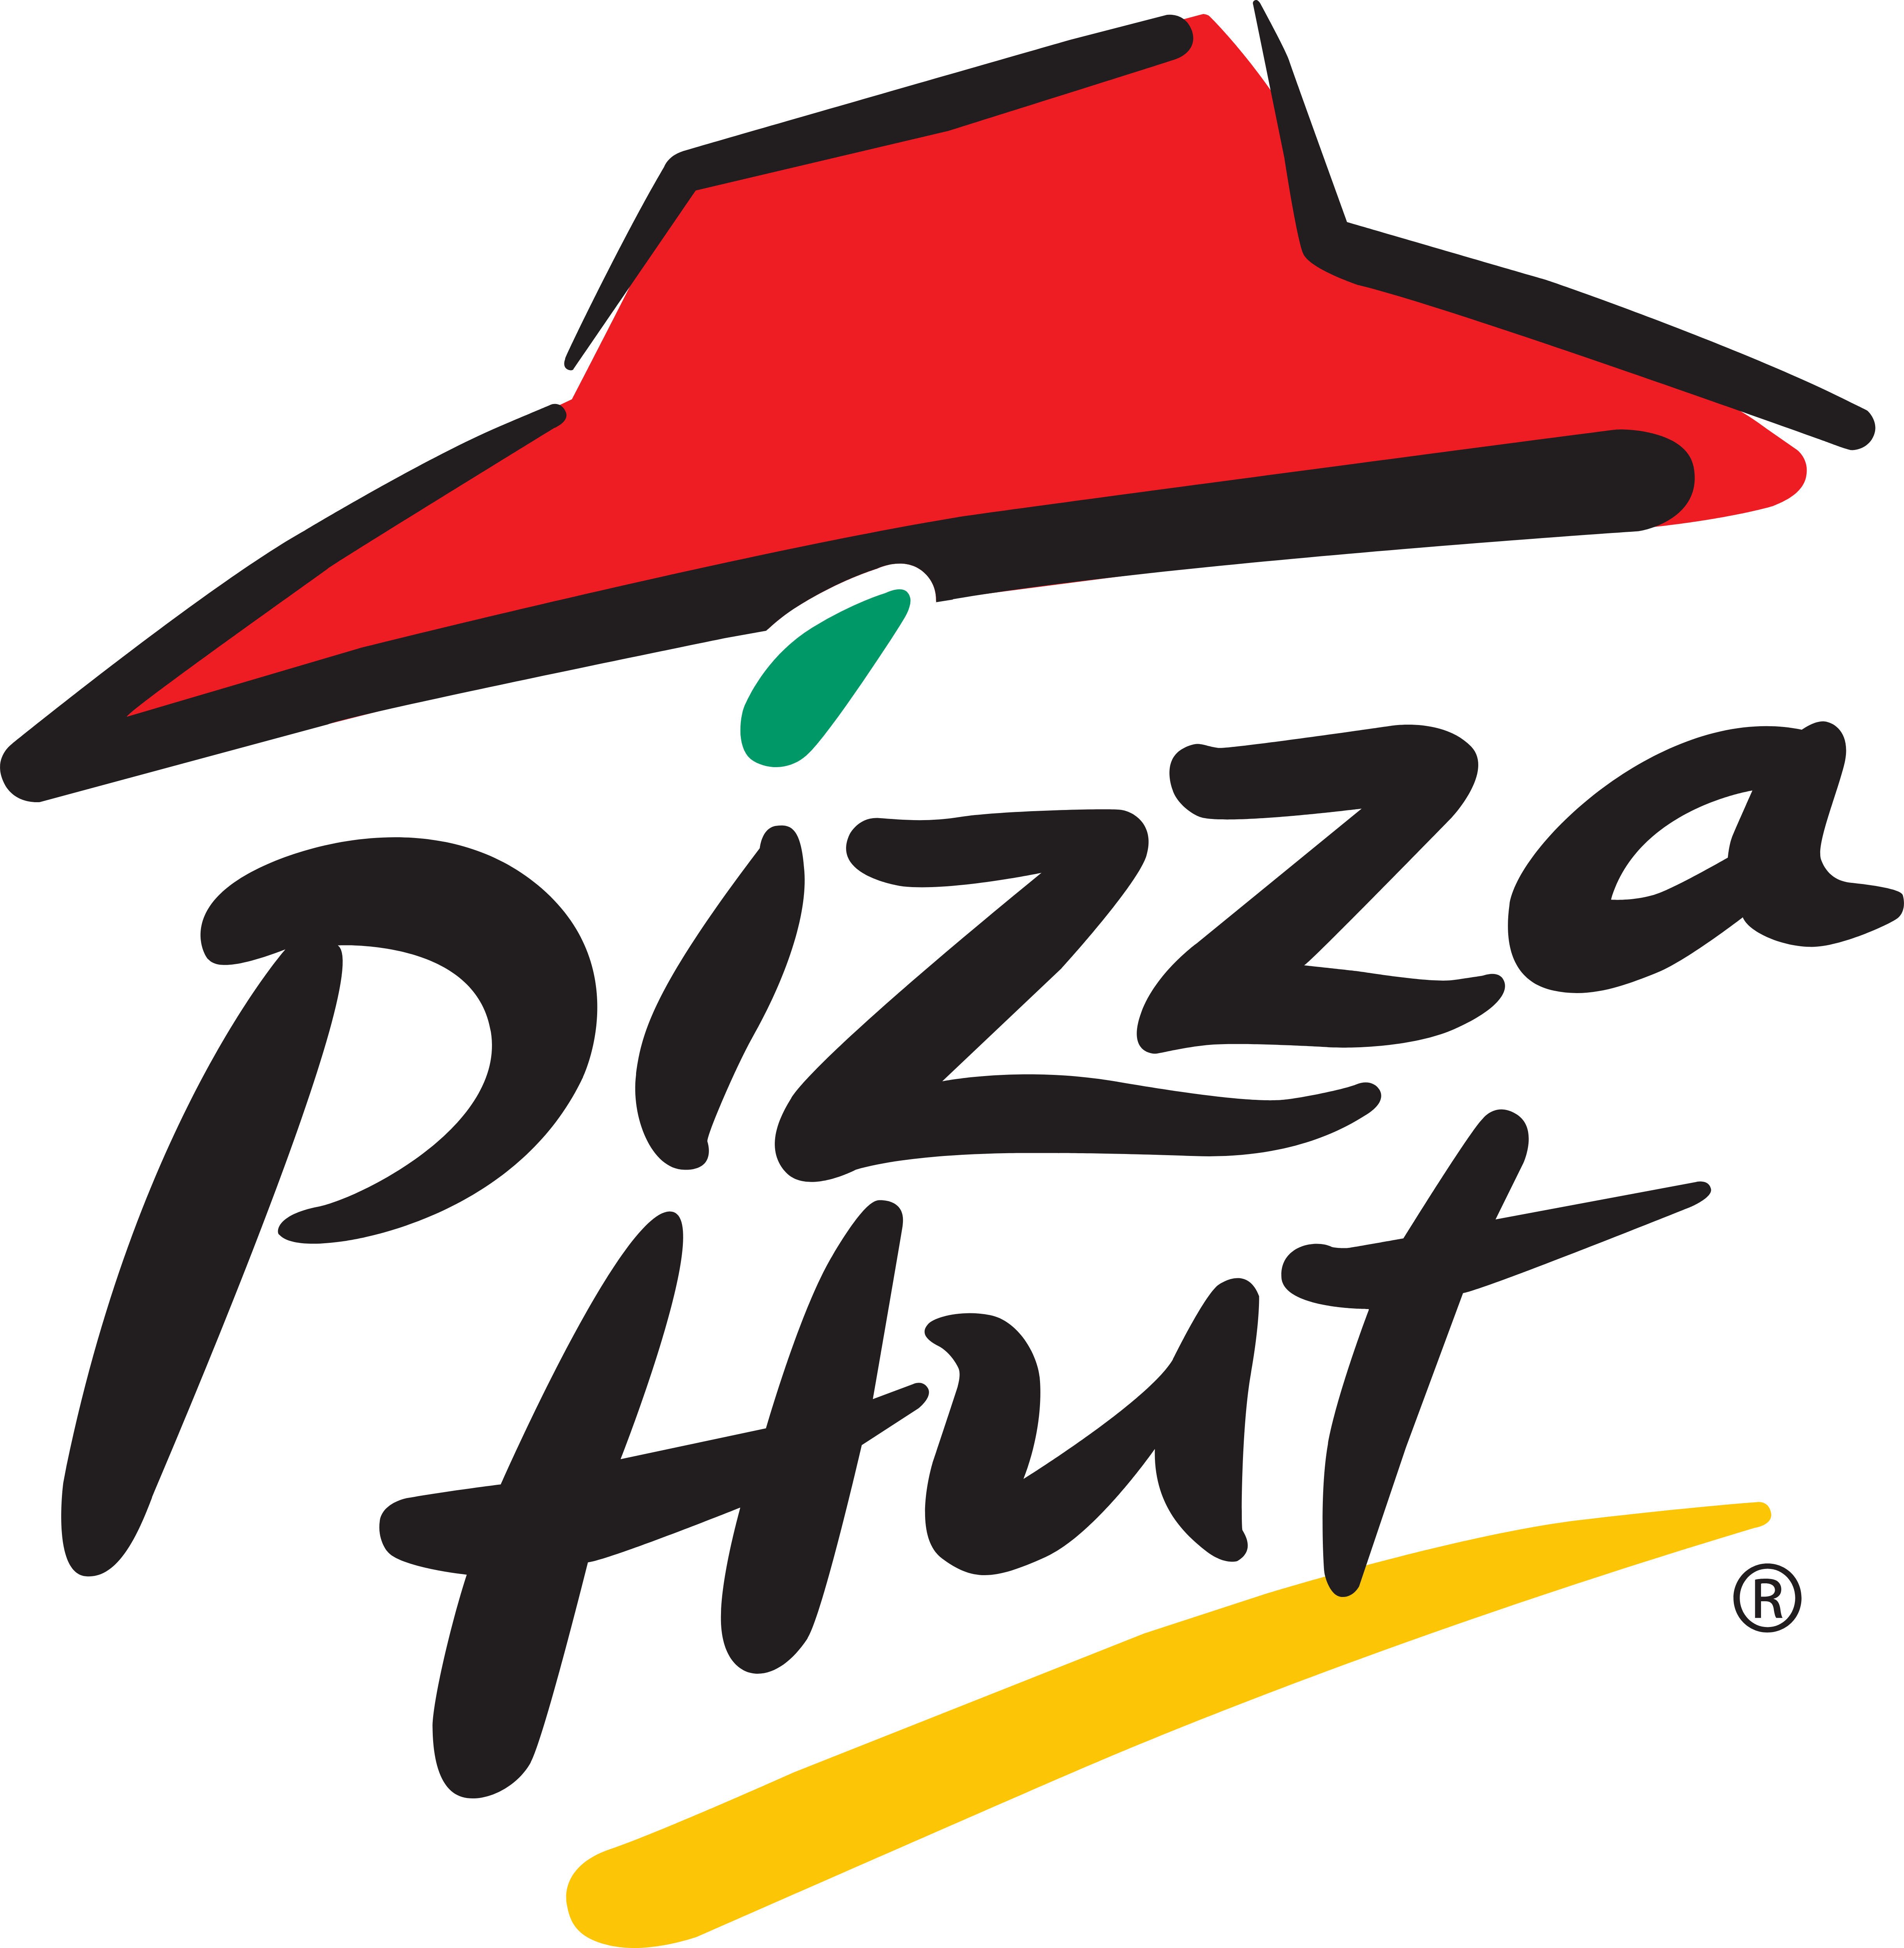 Pizza Hut.